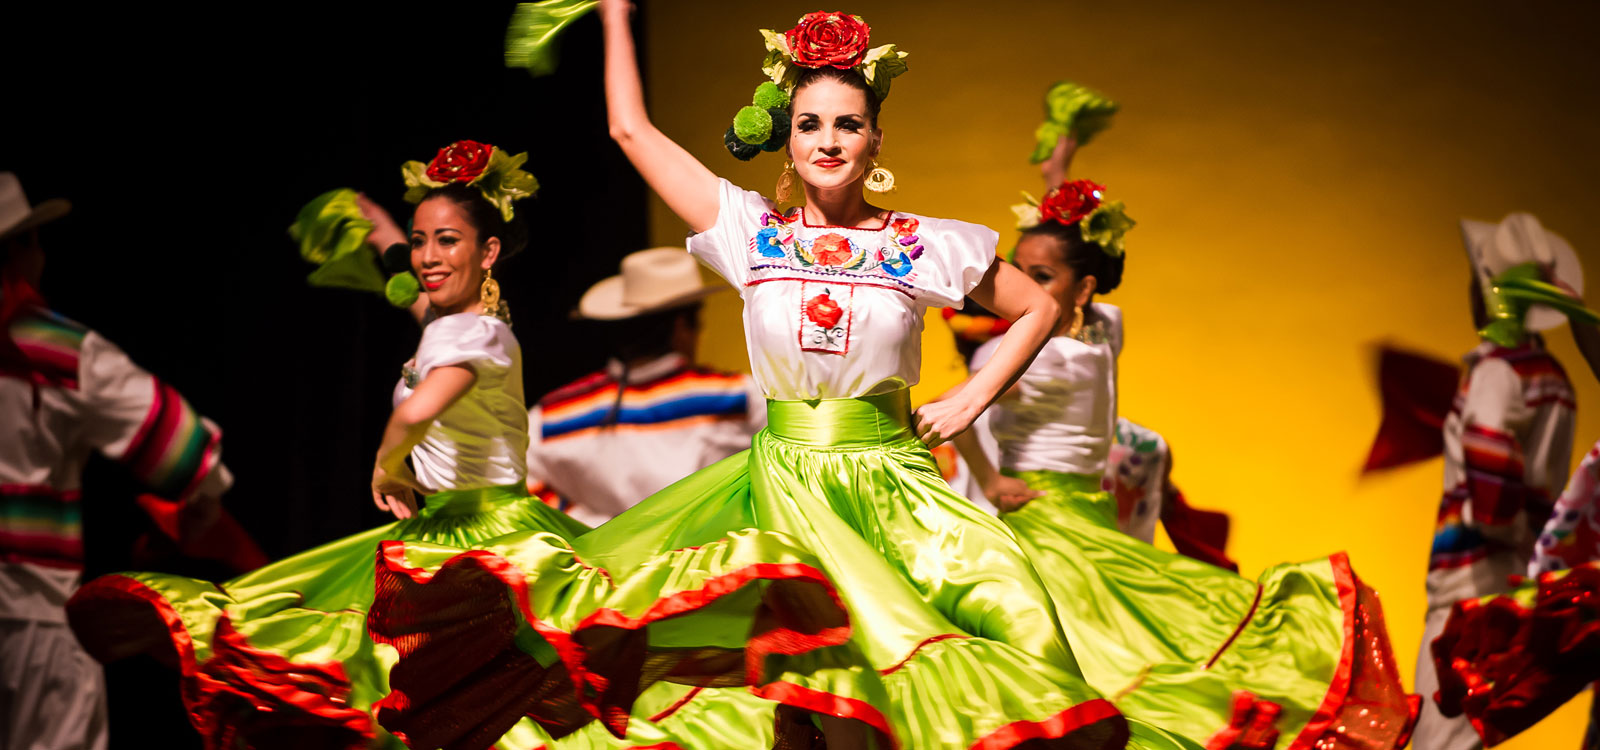 <div class='slider_caption'>		 <h1>Paso de Oro offers Mexican Folklorico dancing like you've never experienced before.</h1>			<a class='slider-readmore' href='http://www.stepsofgolddance.com/registration-tuition/#freeclass'>Try a Class on Us!</a>